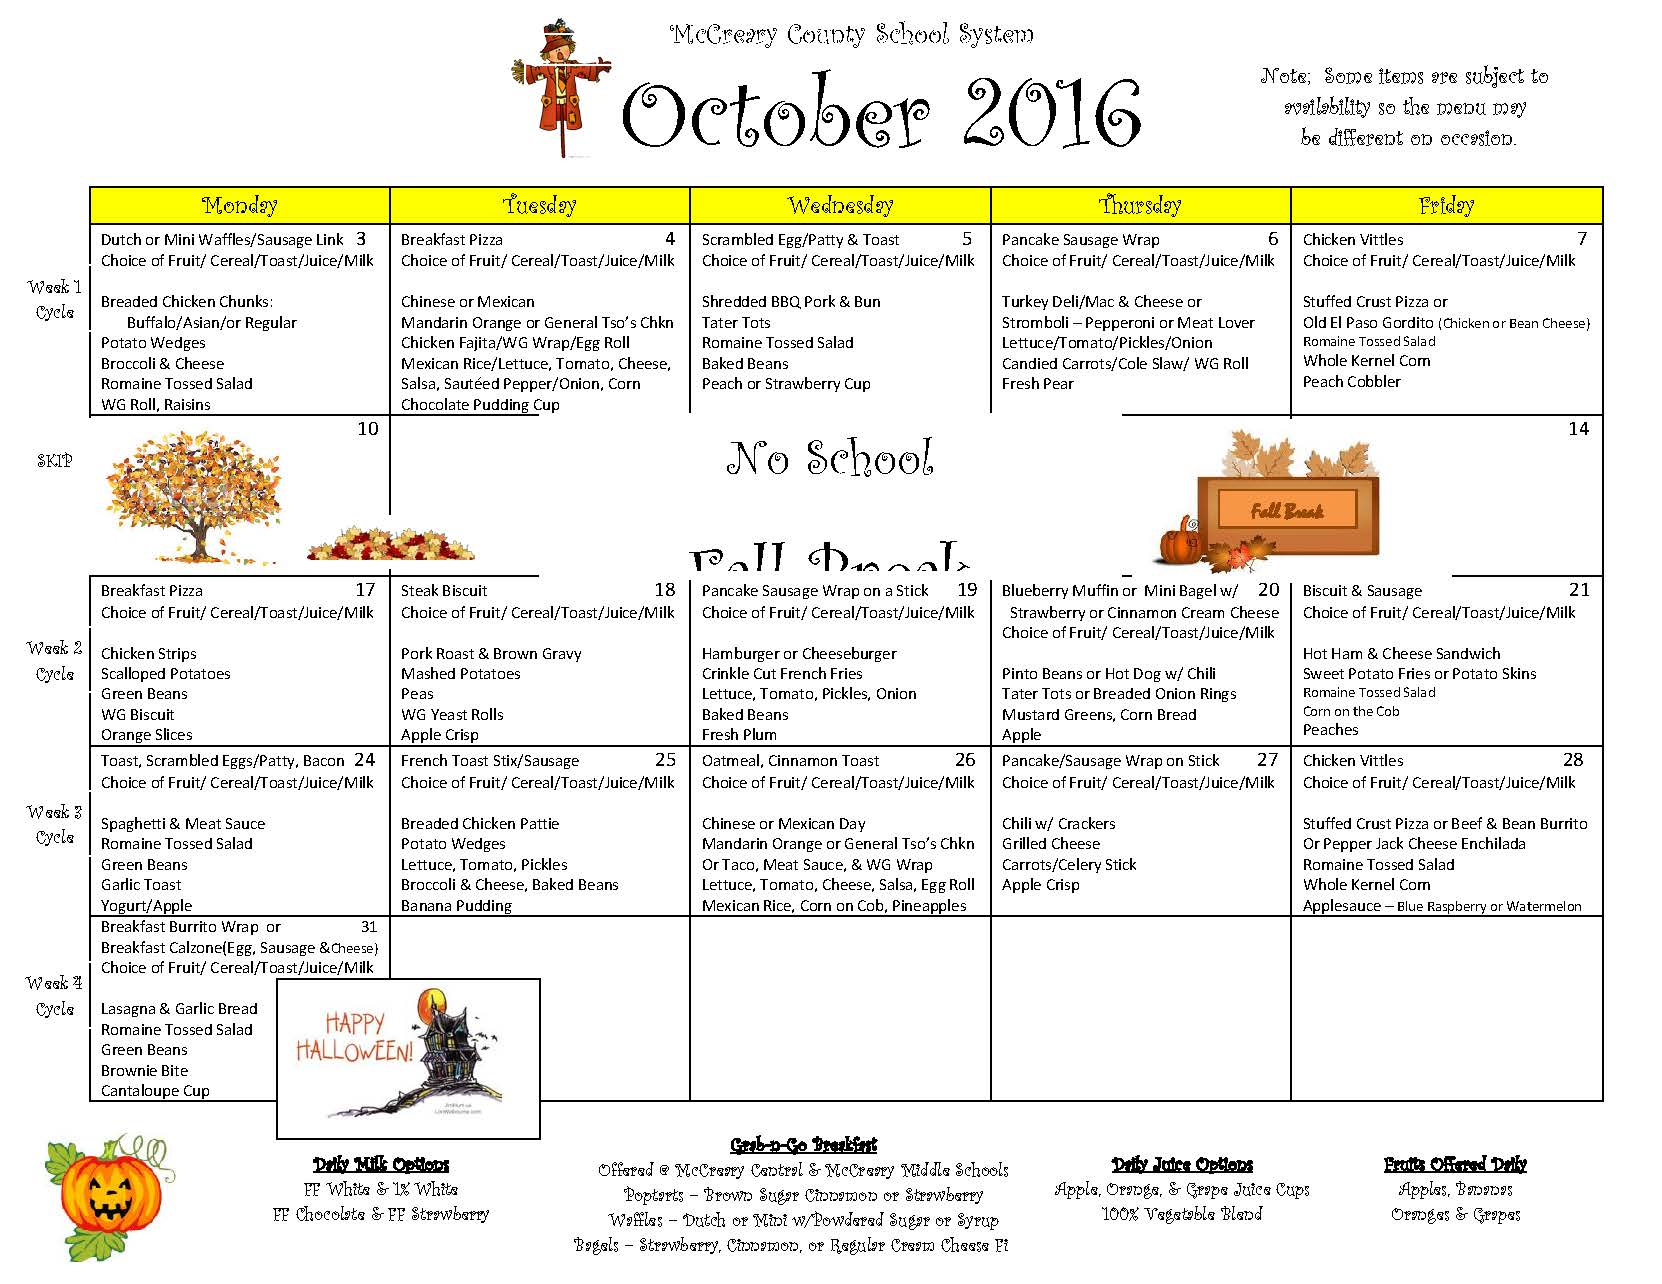 District-wide Breakfast & Lunch Menu For October 2016